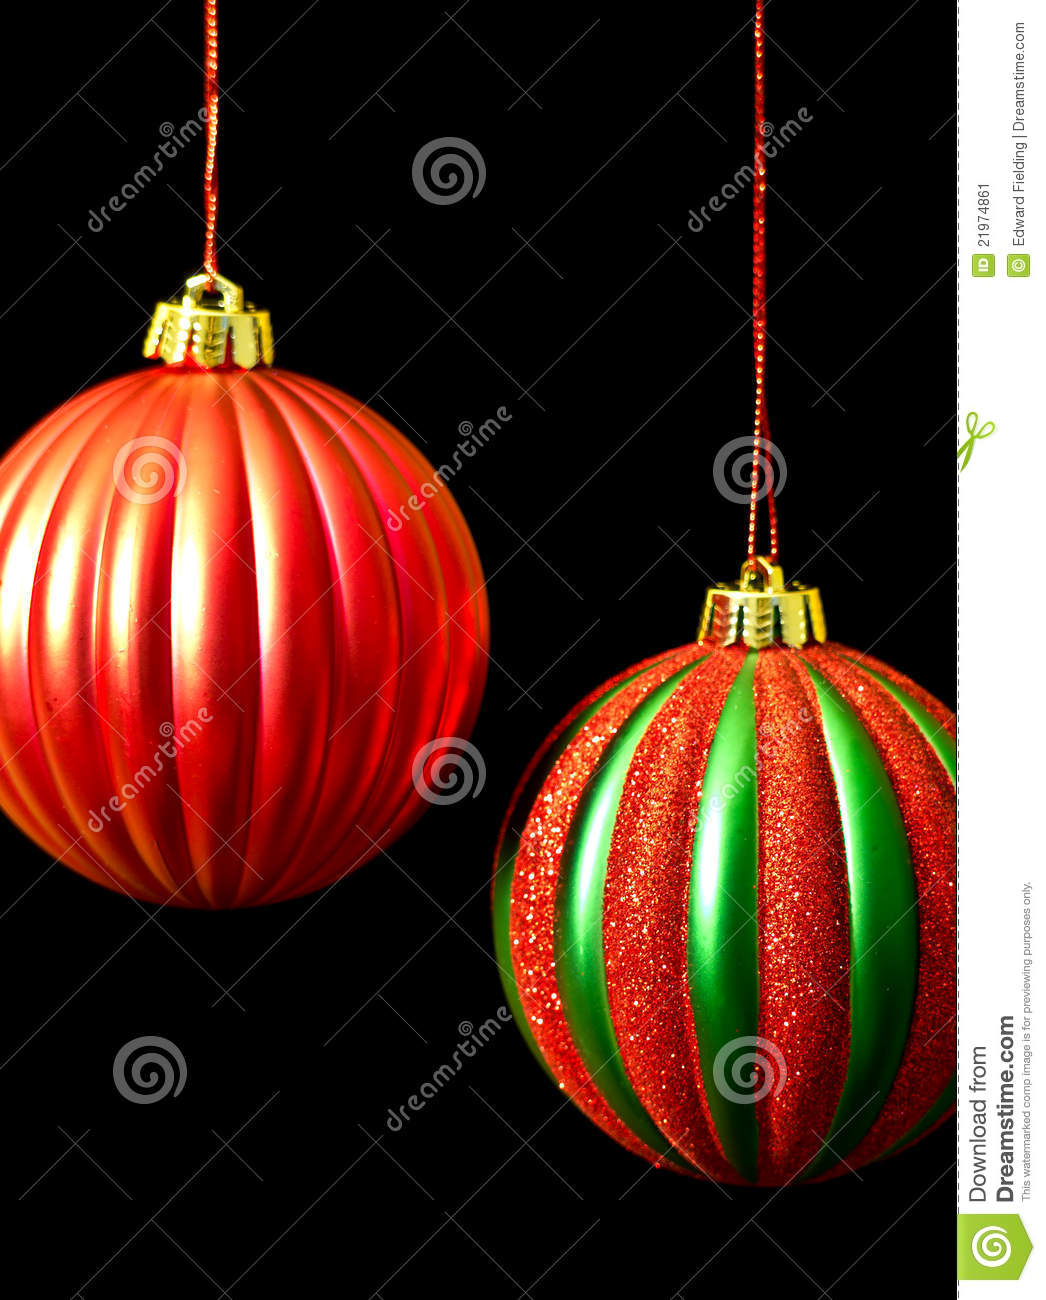 Red and green christmas ornaments on black stock image for Red and green christmas decorations